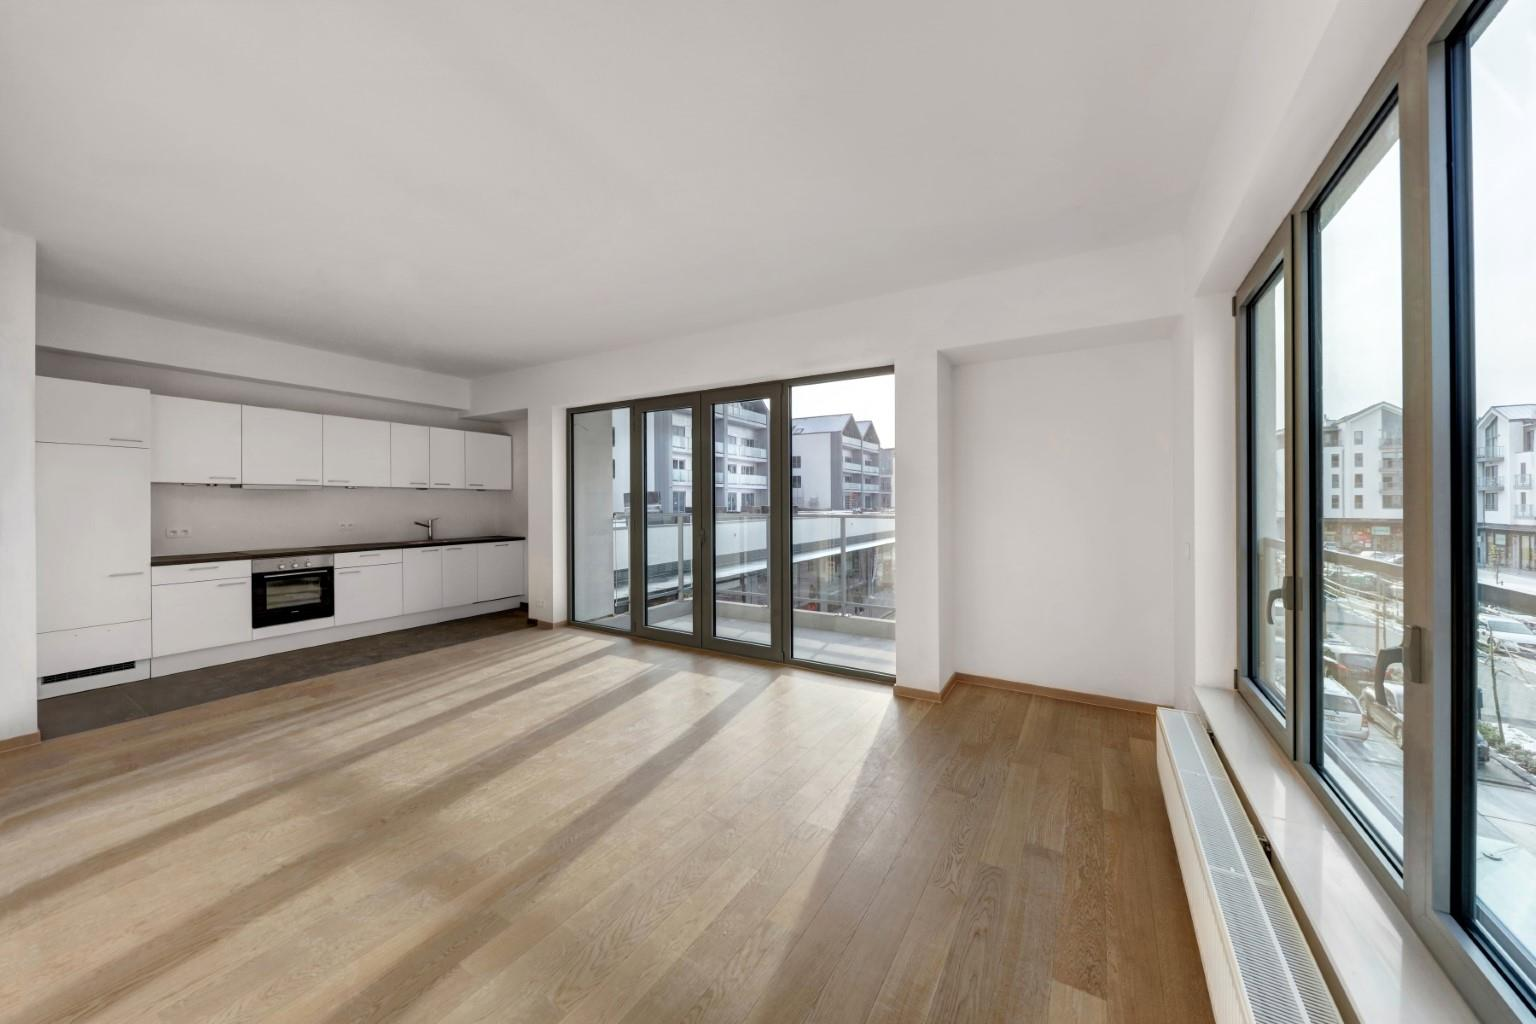 Appartement - Genval - #3806170-8